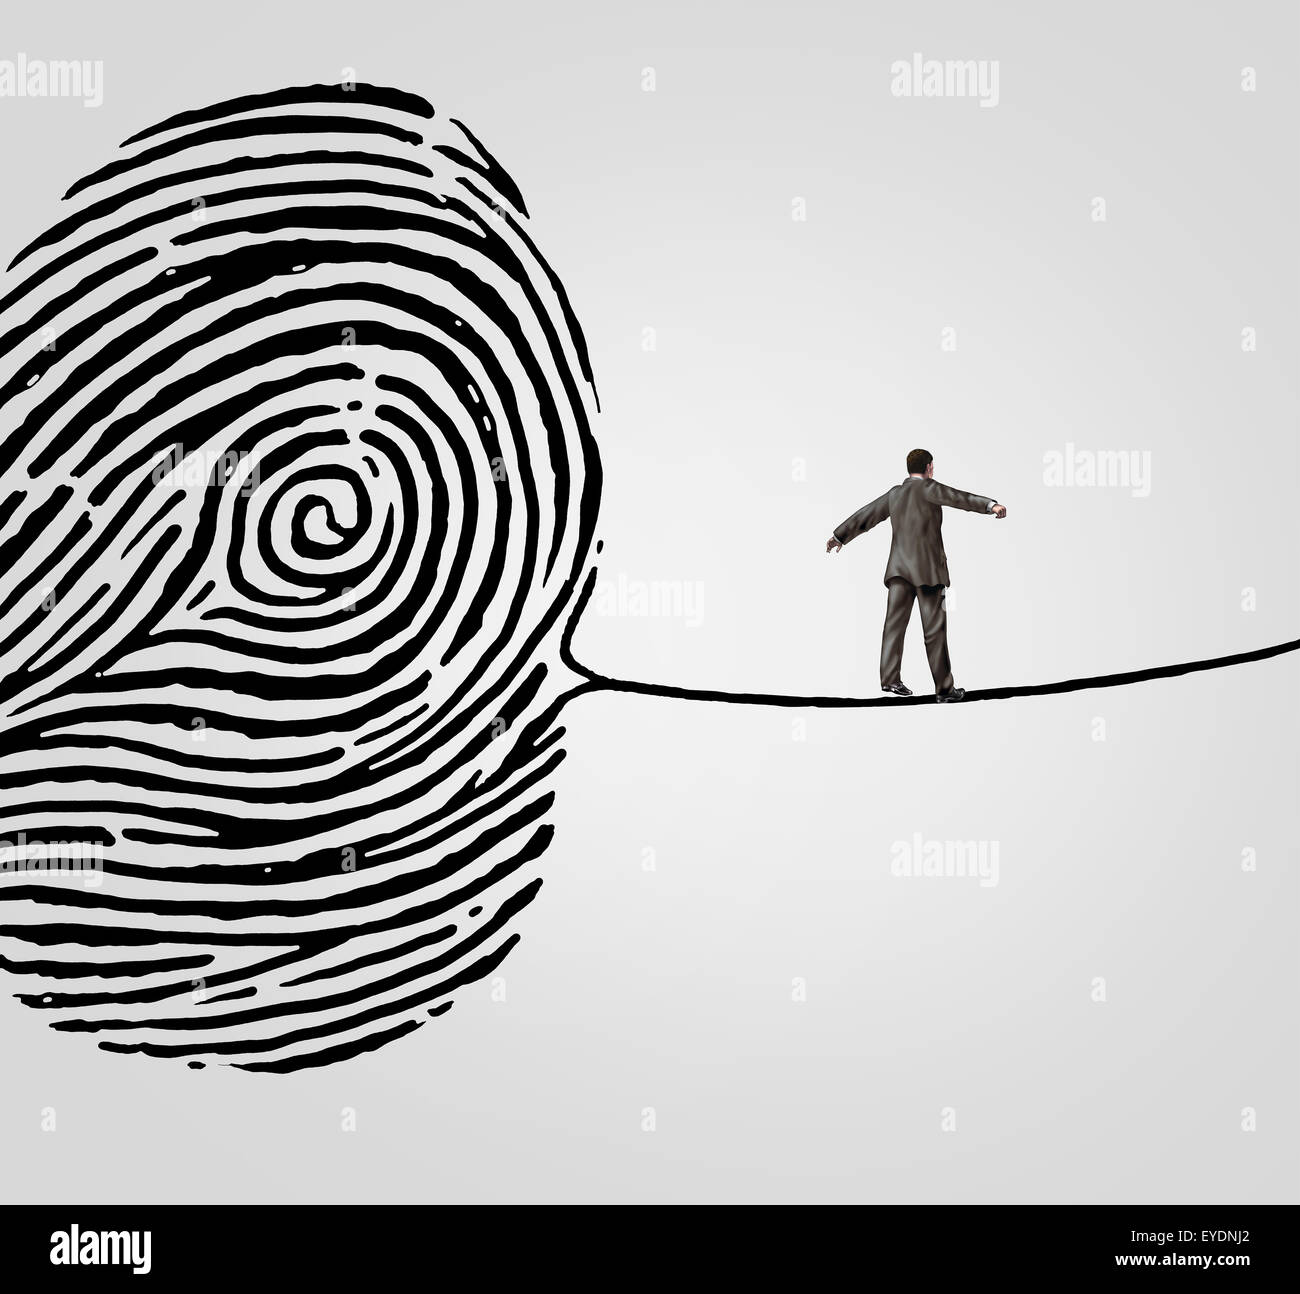 Customer information security risk concept as a person walking on a finger print shaped as a high wire line as an - Stock Image